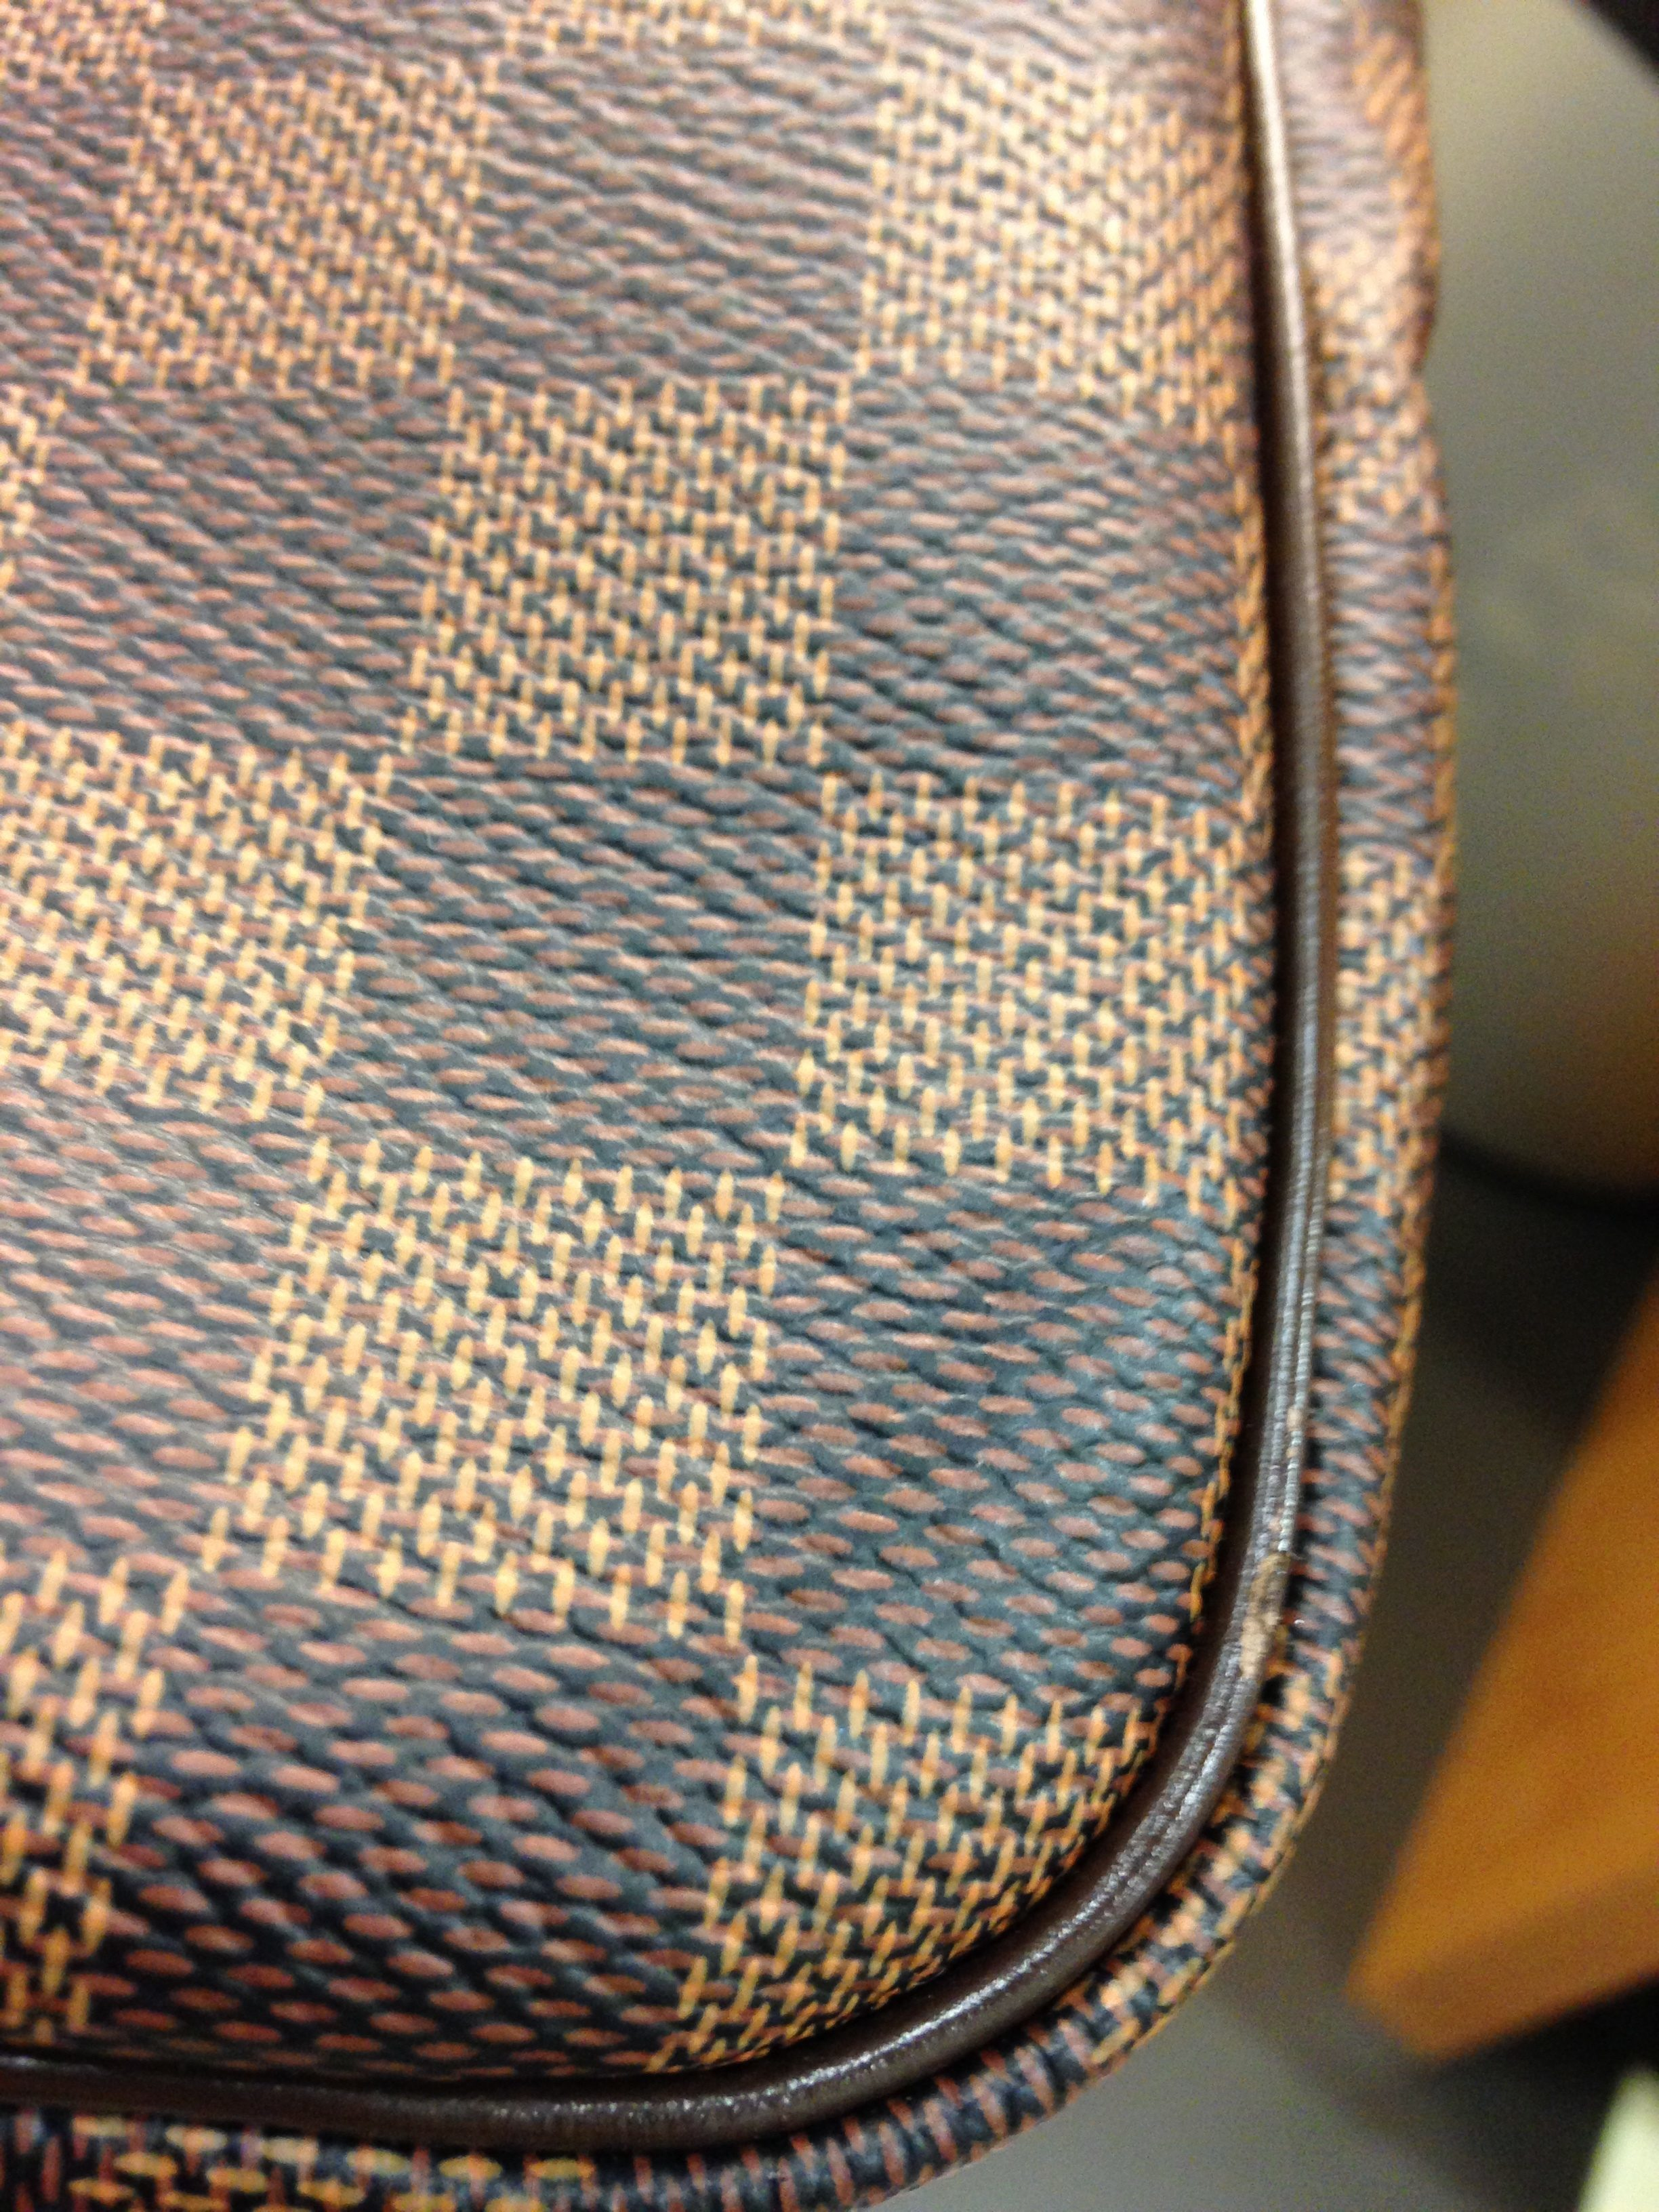 red leather prada bag - Top 155 Complaints and Reviews about Louis Vuitton   Page 2